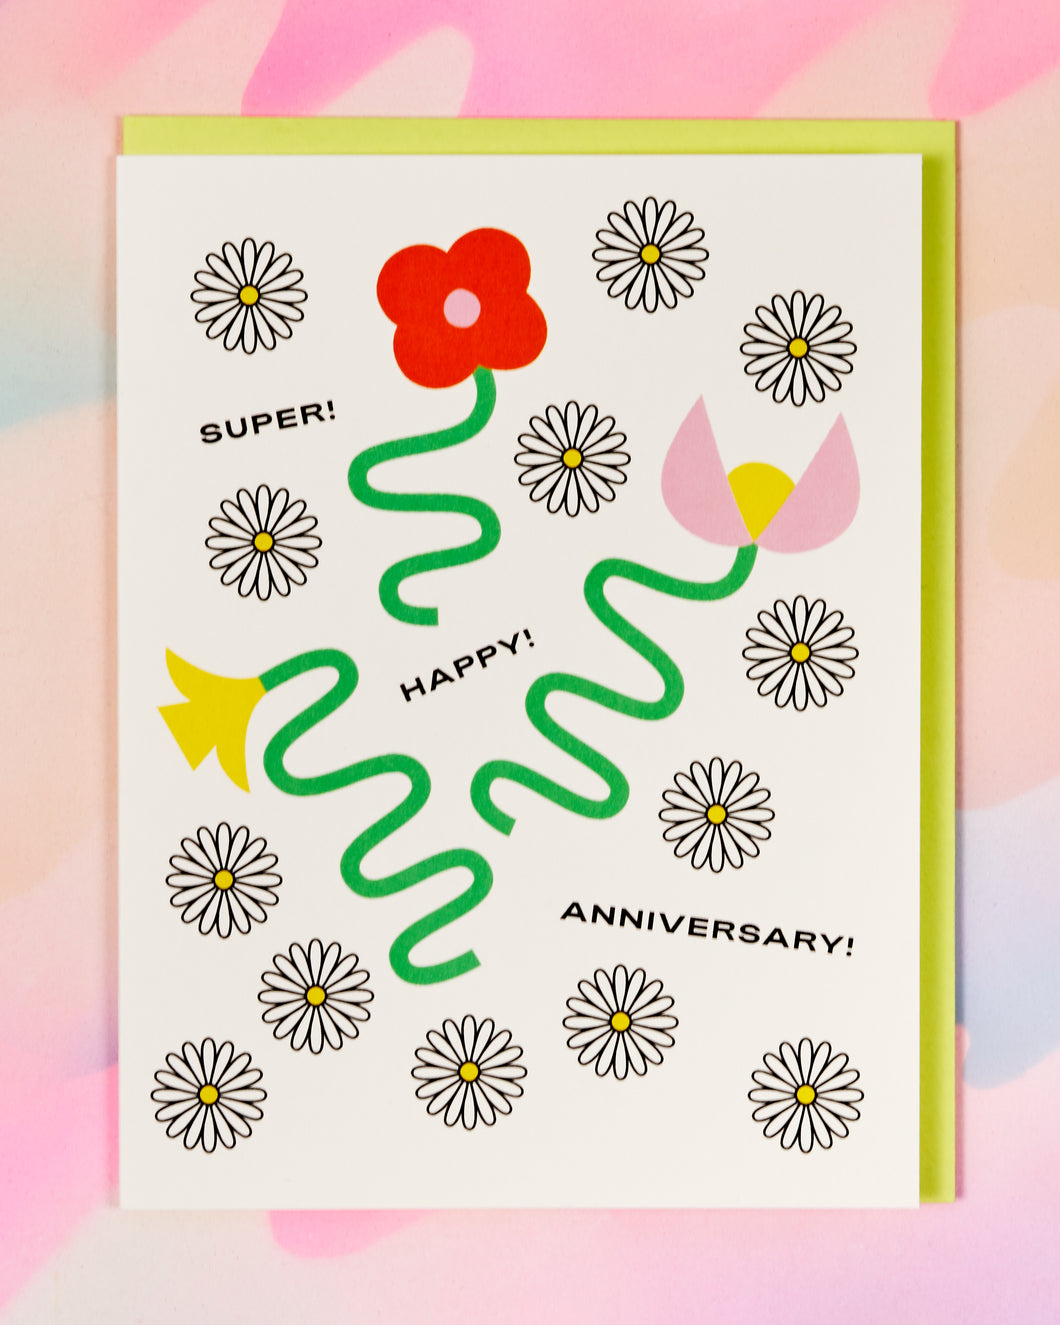 Super! Happy! Anniversary Card